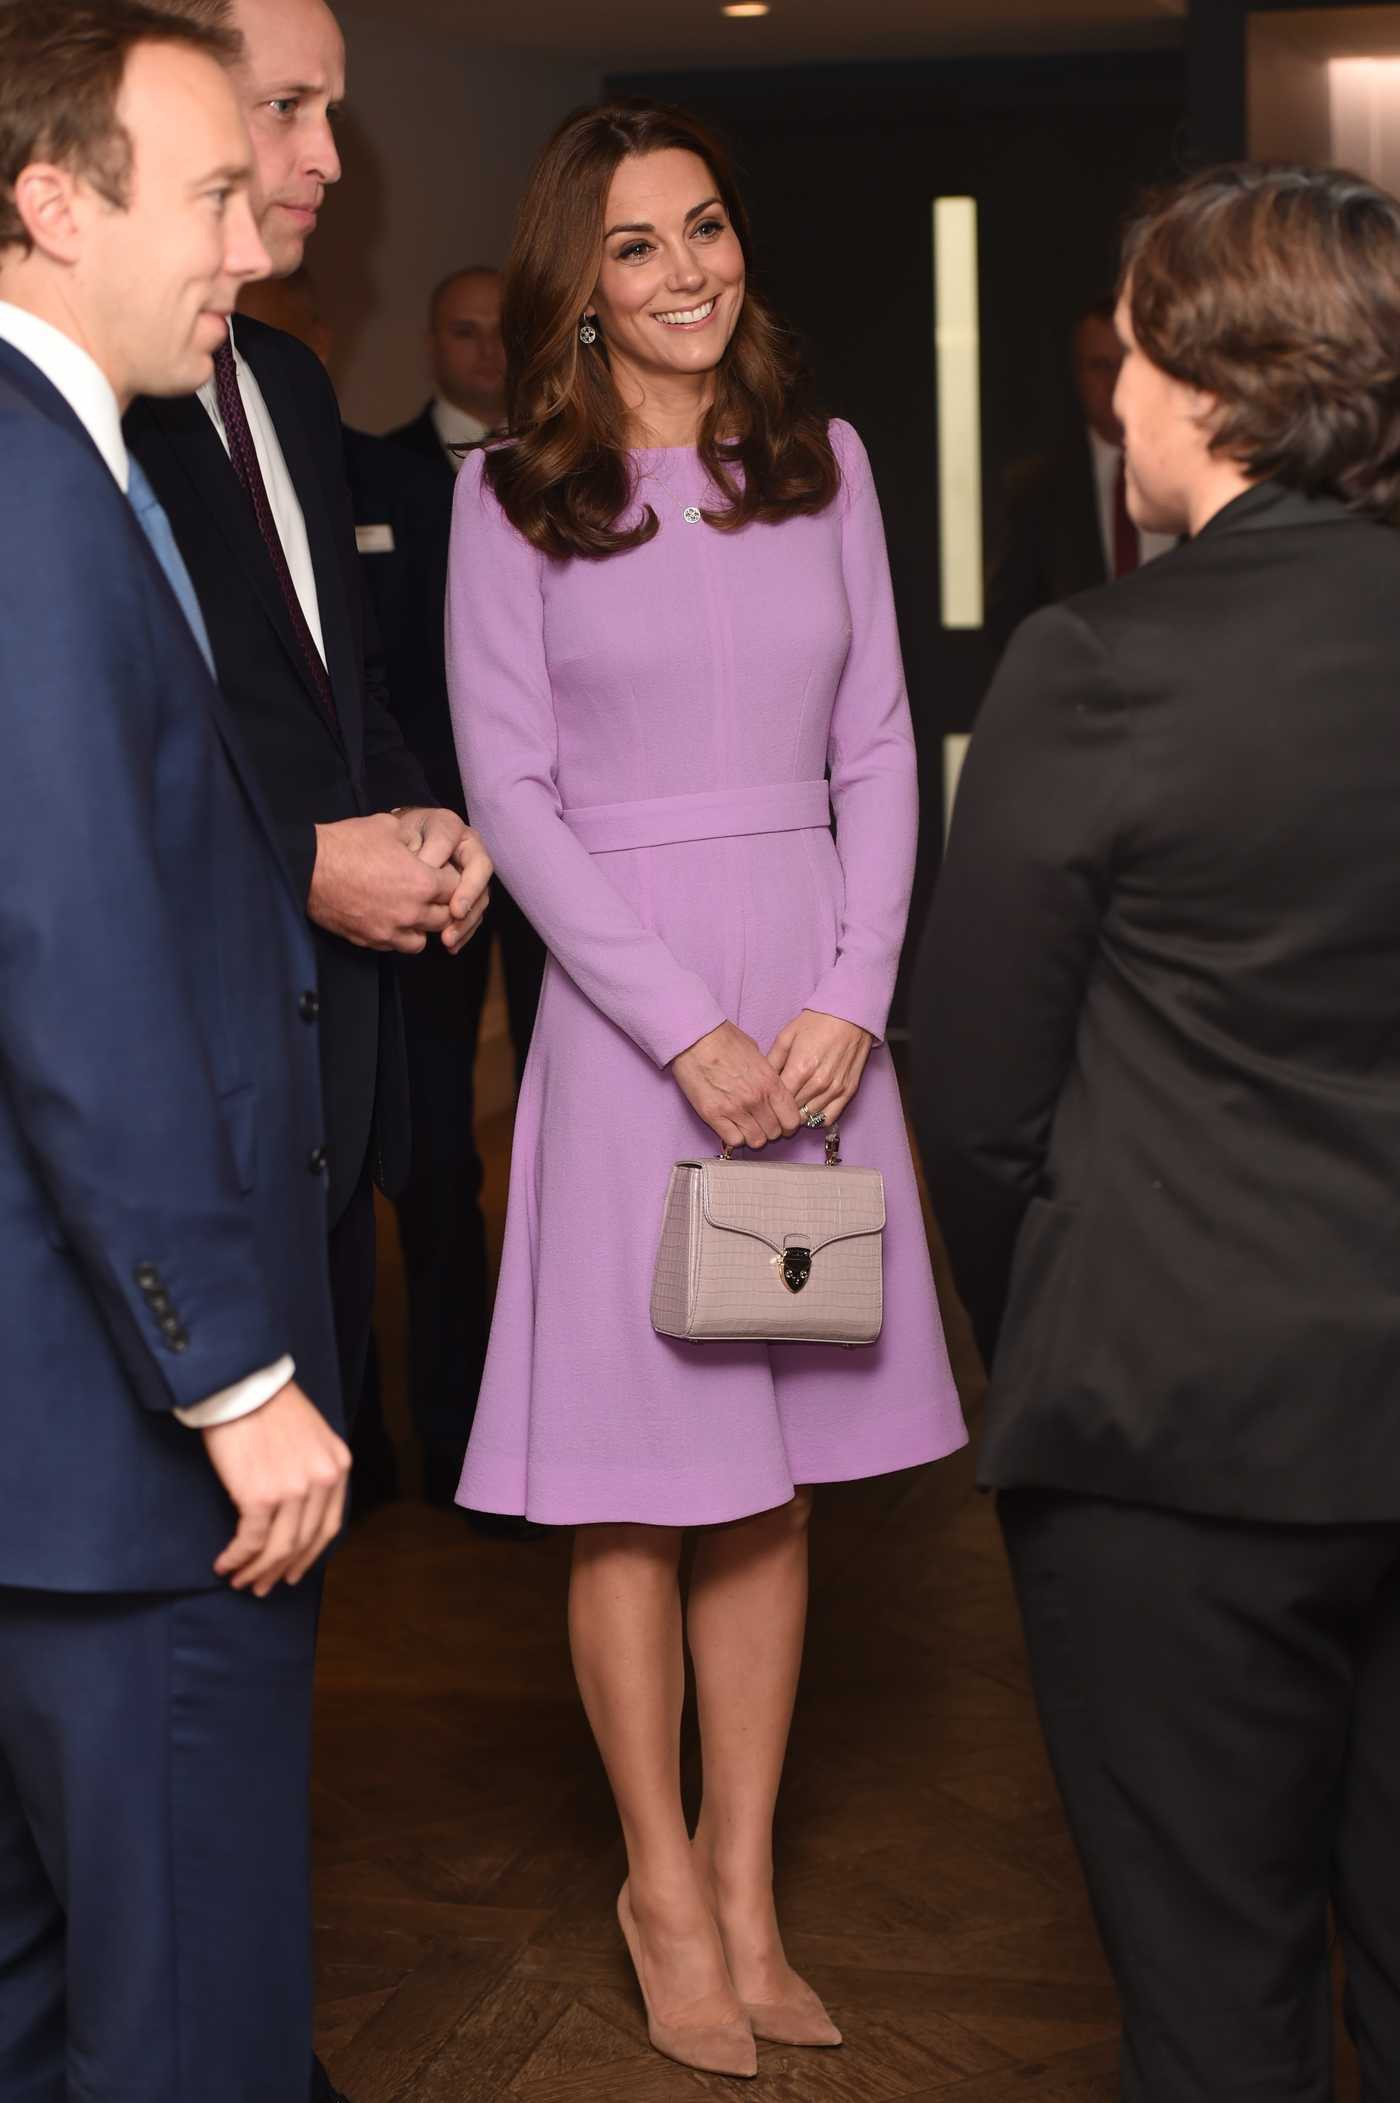 kate-middleton-in-a-purple-dress-arrives-at-the-first-global-ministerial-mental-health-summit-in-london-10-09-2018-5